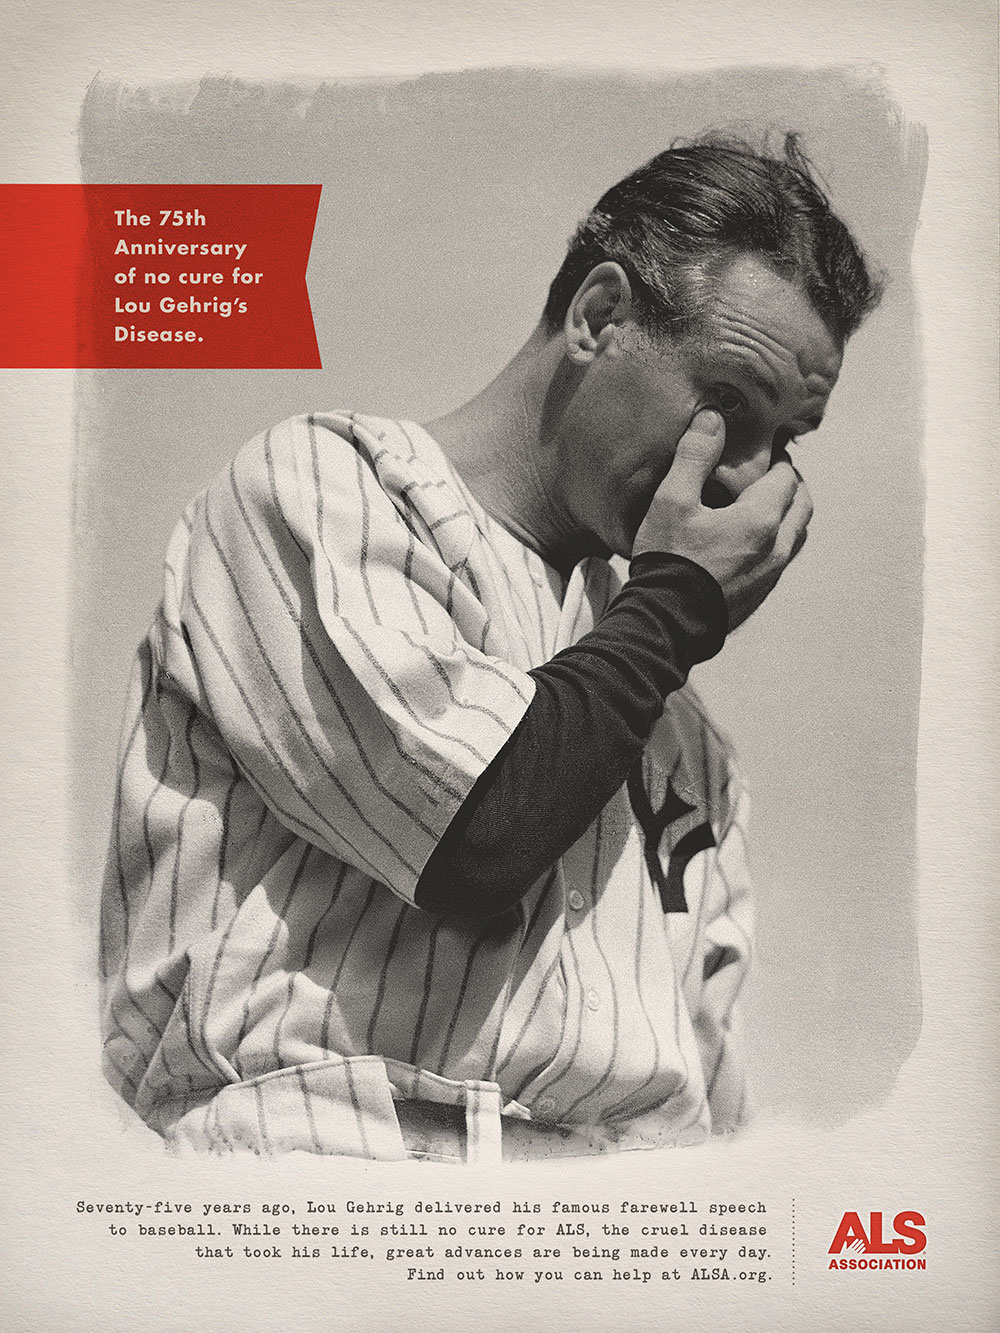 The 75th Anniversary of no cure for Lou Gehrig's Disease